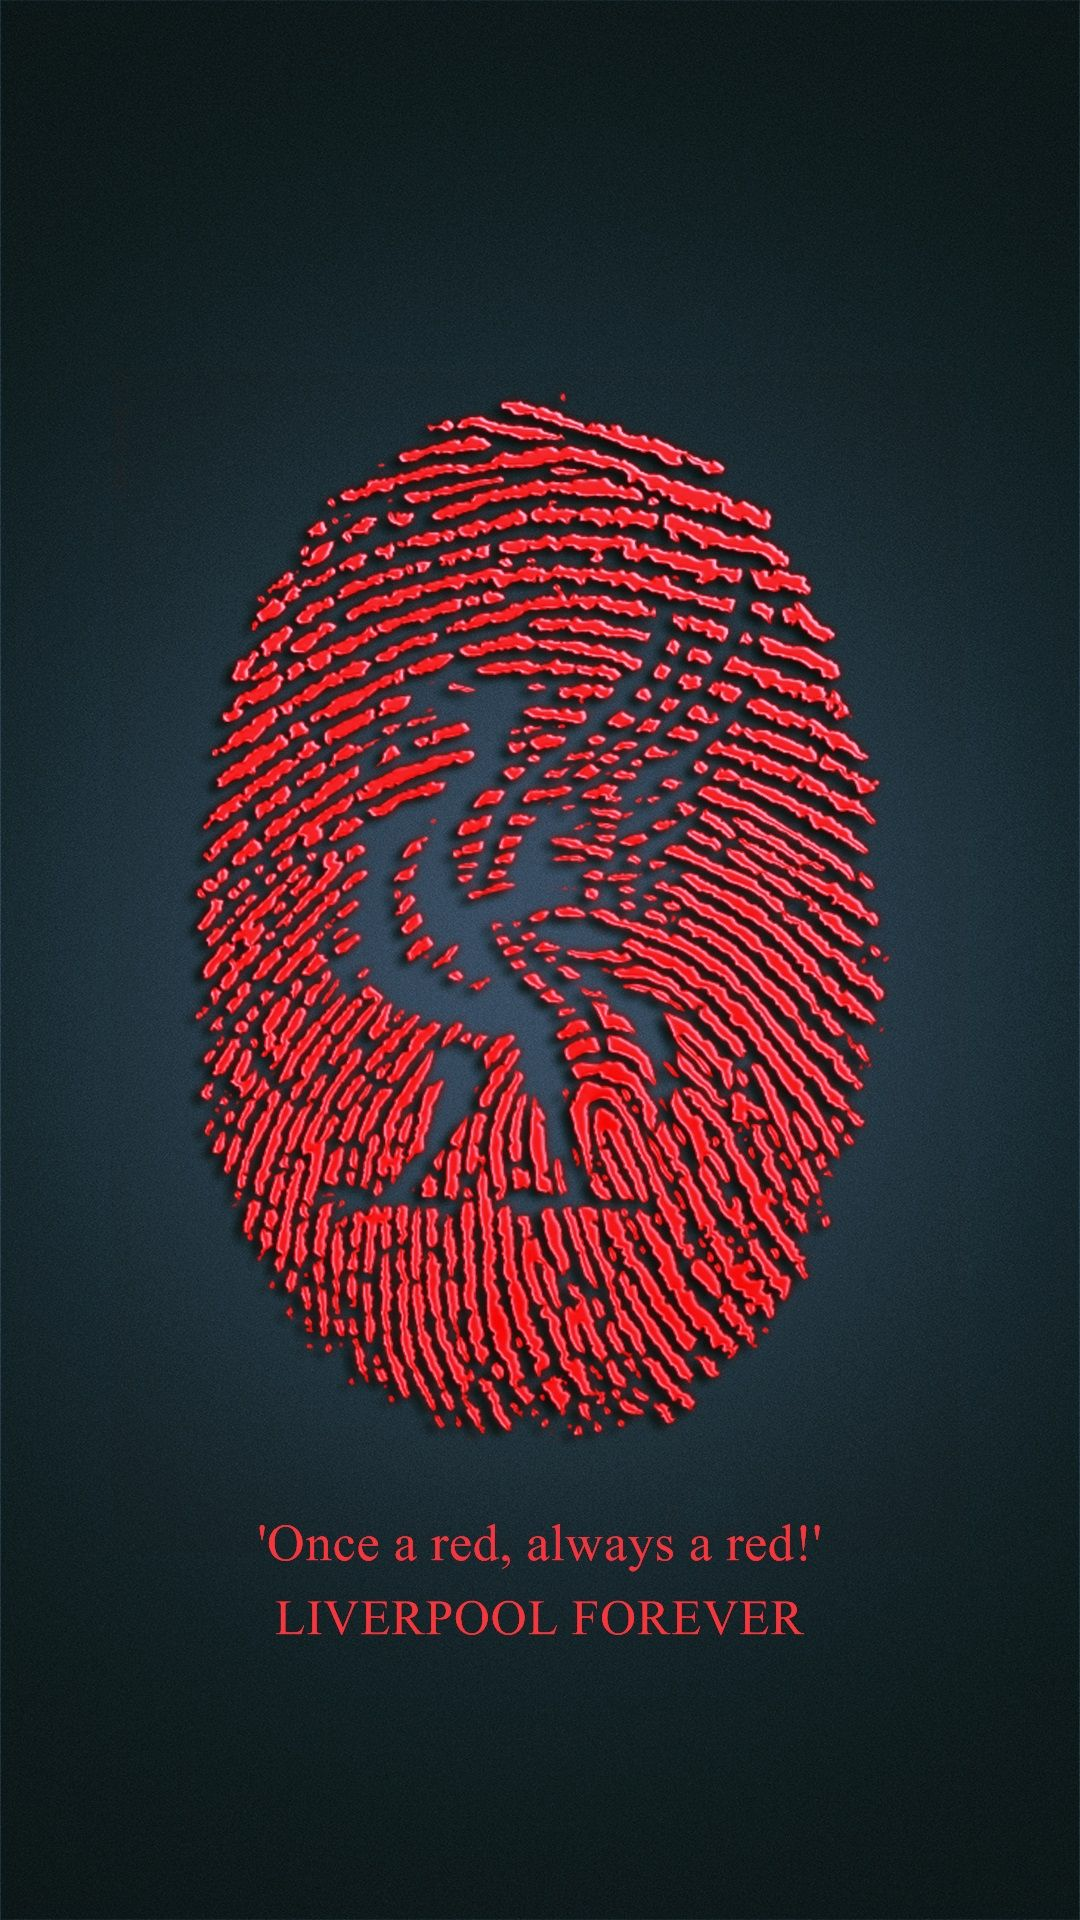 Wallpaper Liverpool on